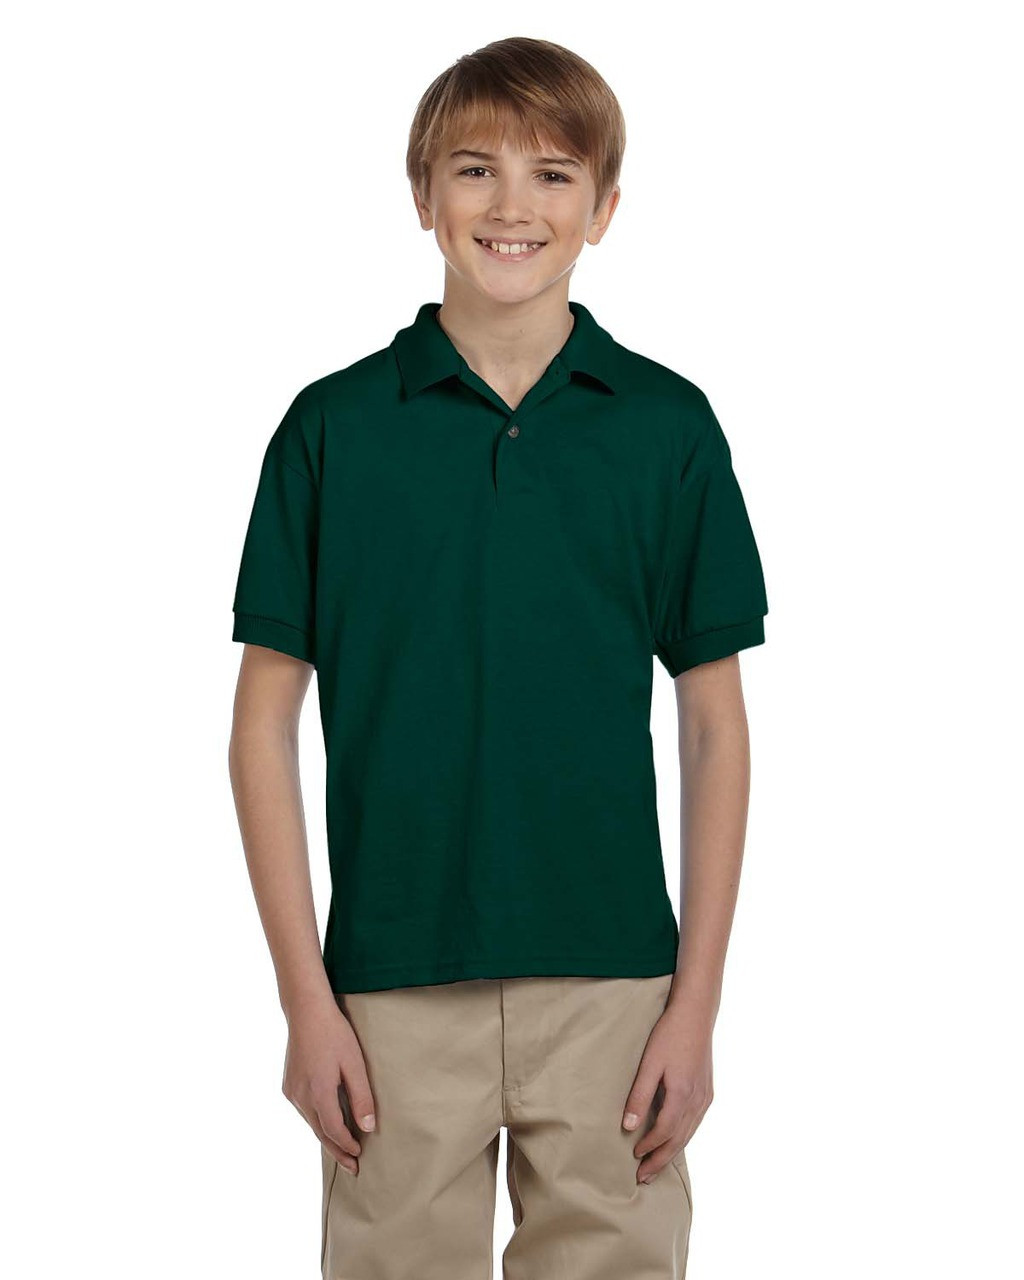 Forest Green - G880B Gildan DryBlend® Youth 50/50 Jersey Polo Shirt | Blankclothing.ca